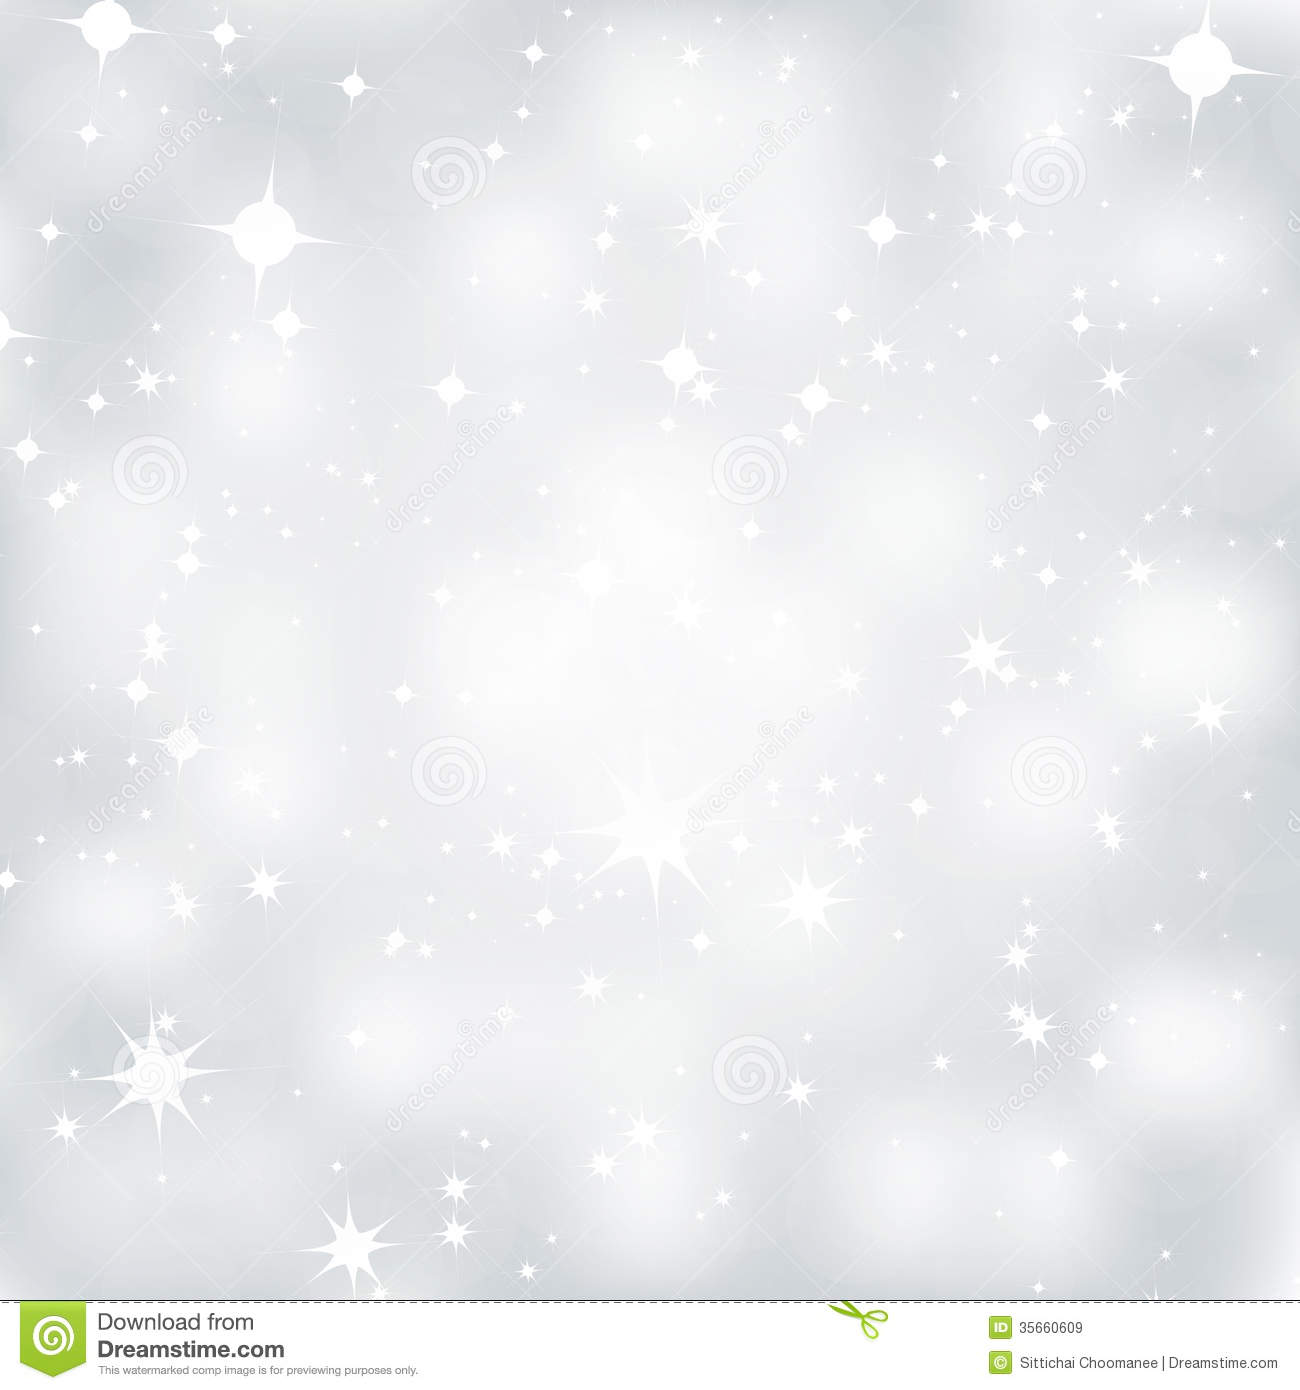 image about Free Printable Backgrounds for Paper called free of charge printable xmas backgrounds - Kadil